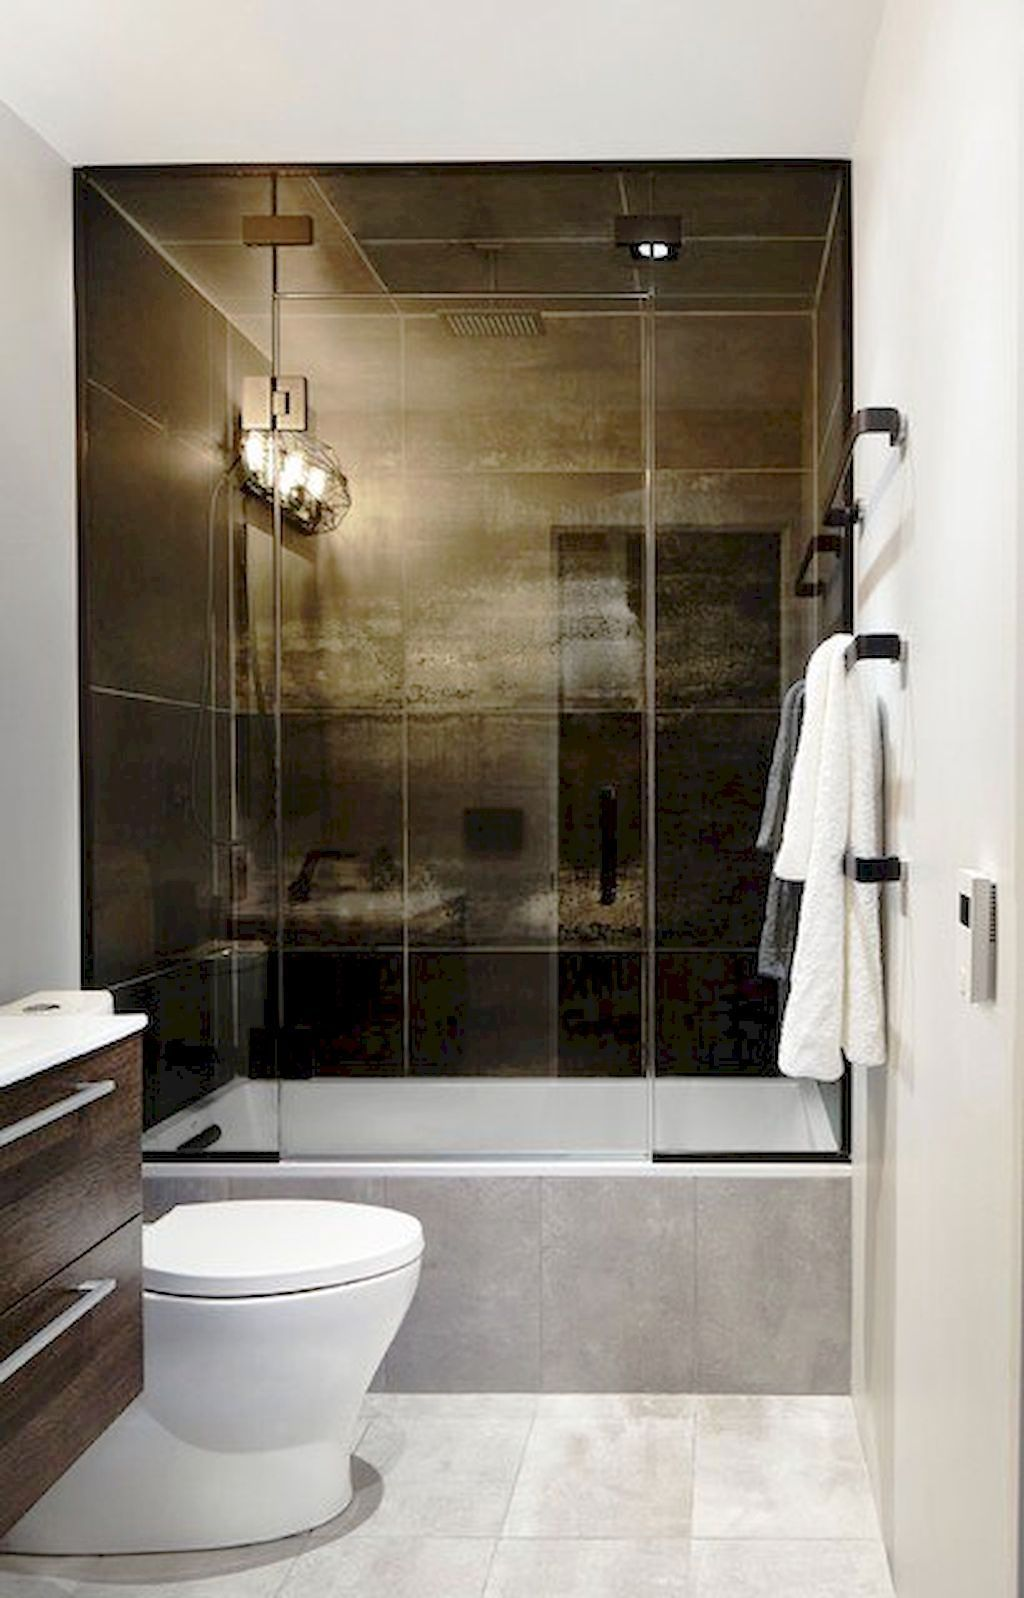 How to Use Low Budget to Remodel Small Master Bathroom ... on Simple:zvjxpw8Nmfo= Small Bathroom Ideas  id=91749